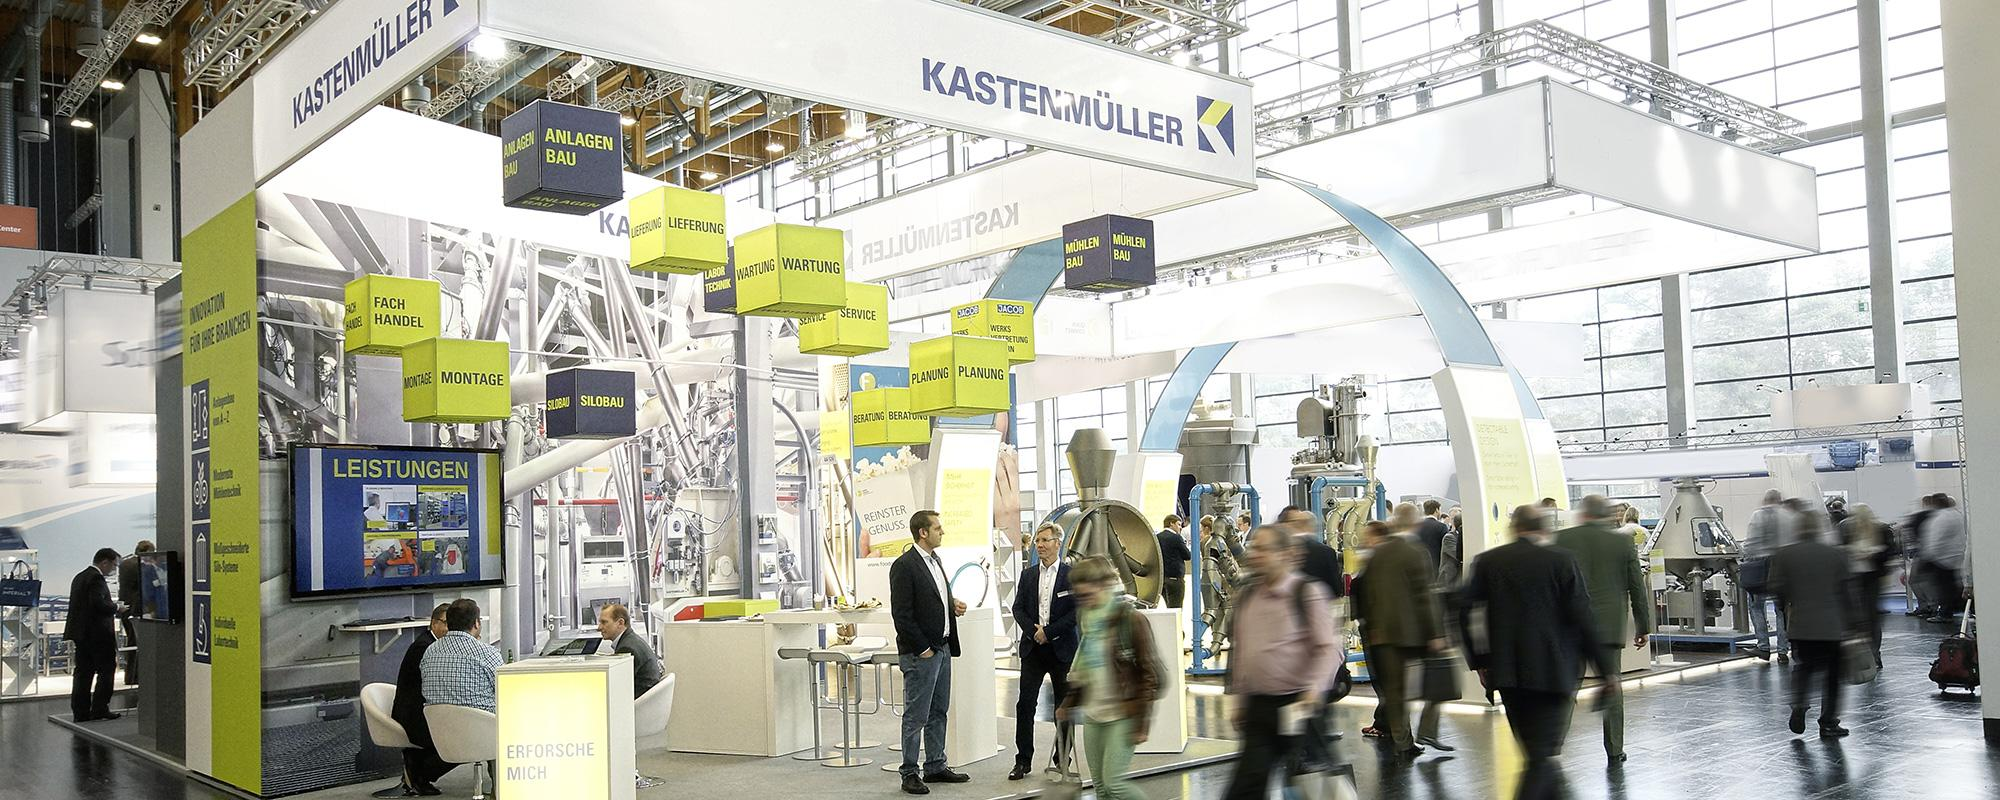 Kastenmüller Messestand von KE-COMMUNICATION